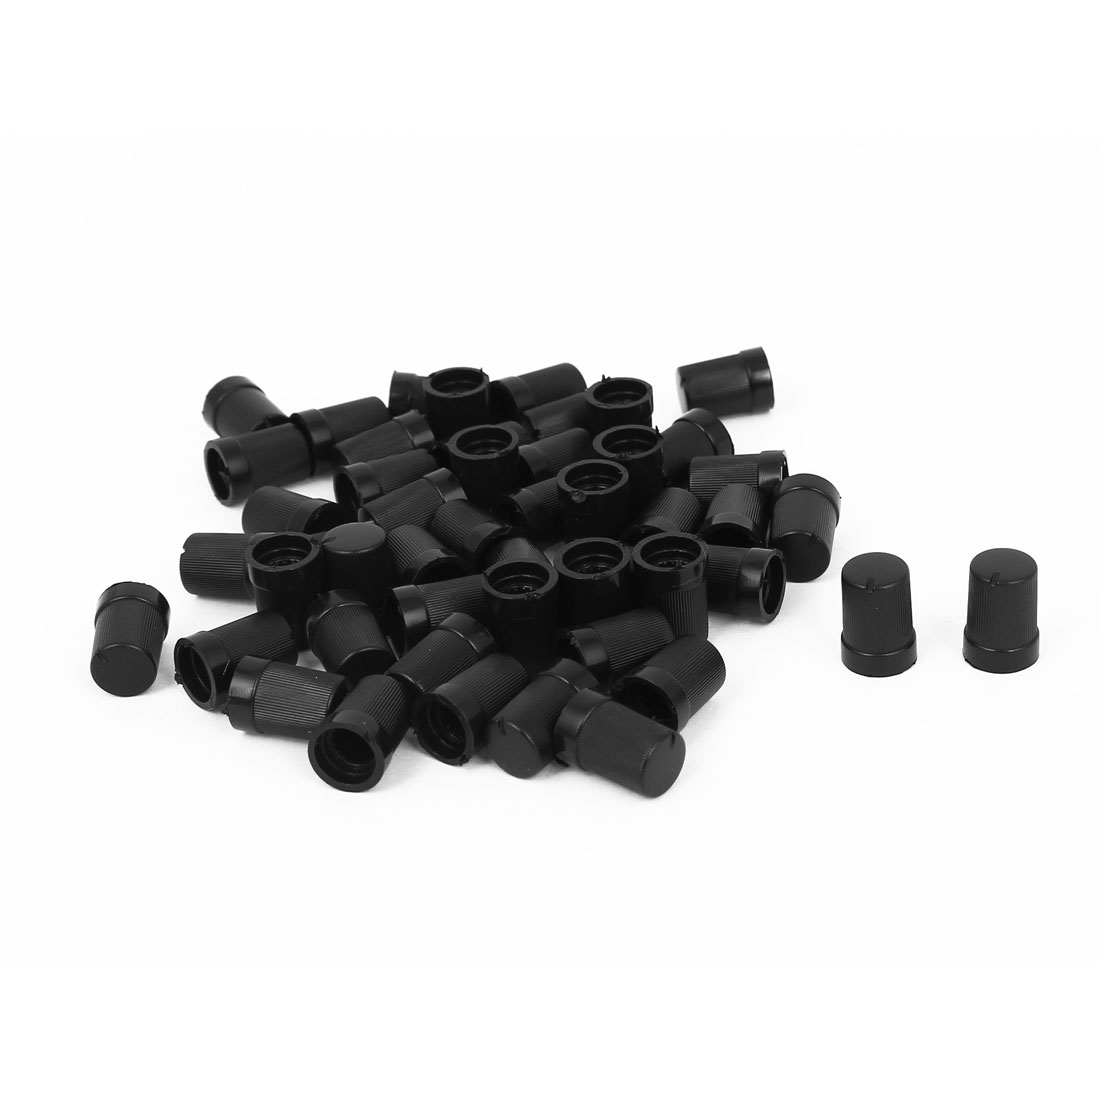 50pcs Black Round Shape Potentiometer Pot Control Knob for 7mm Dia Shaft